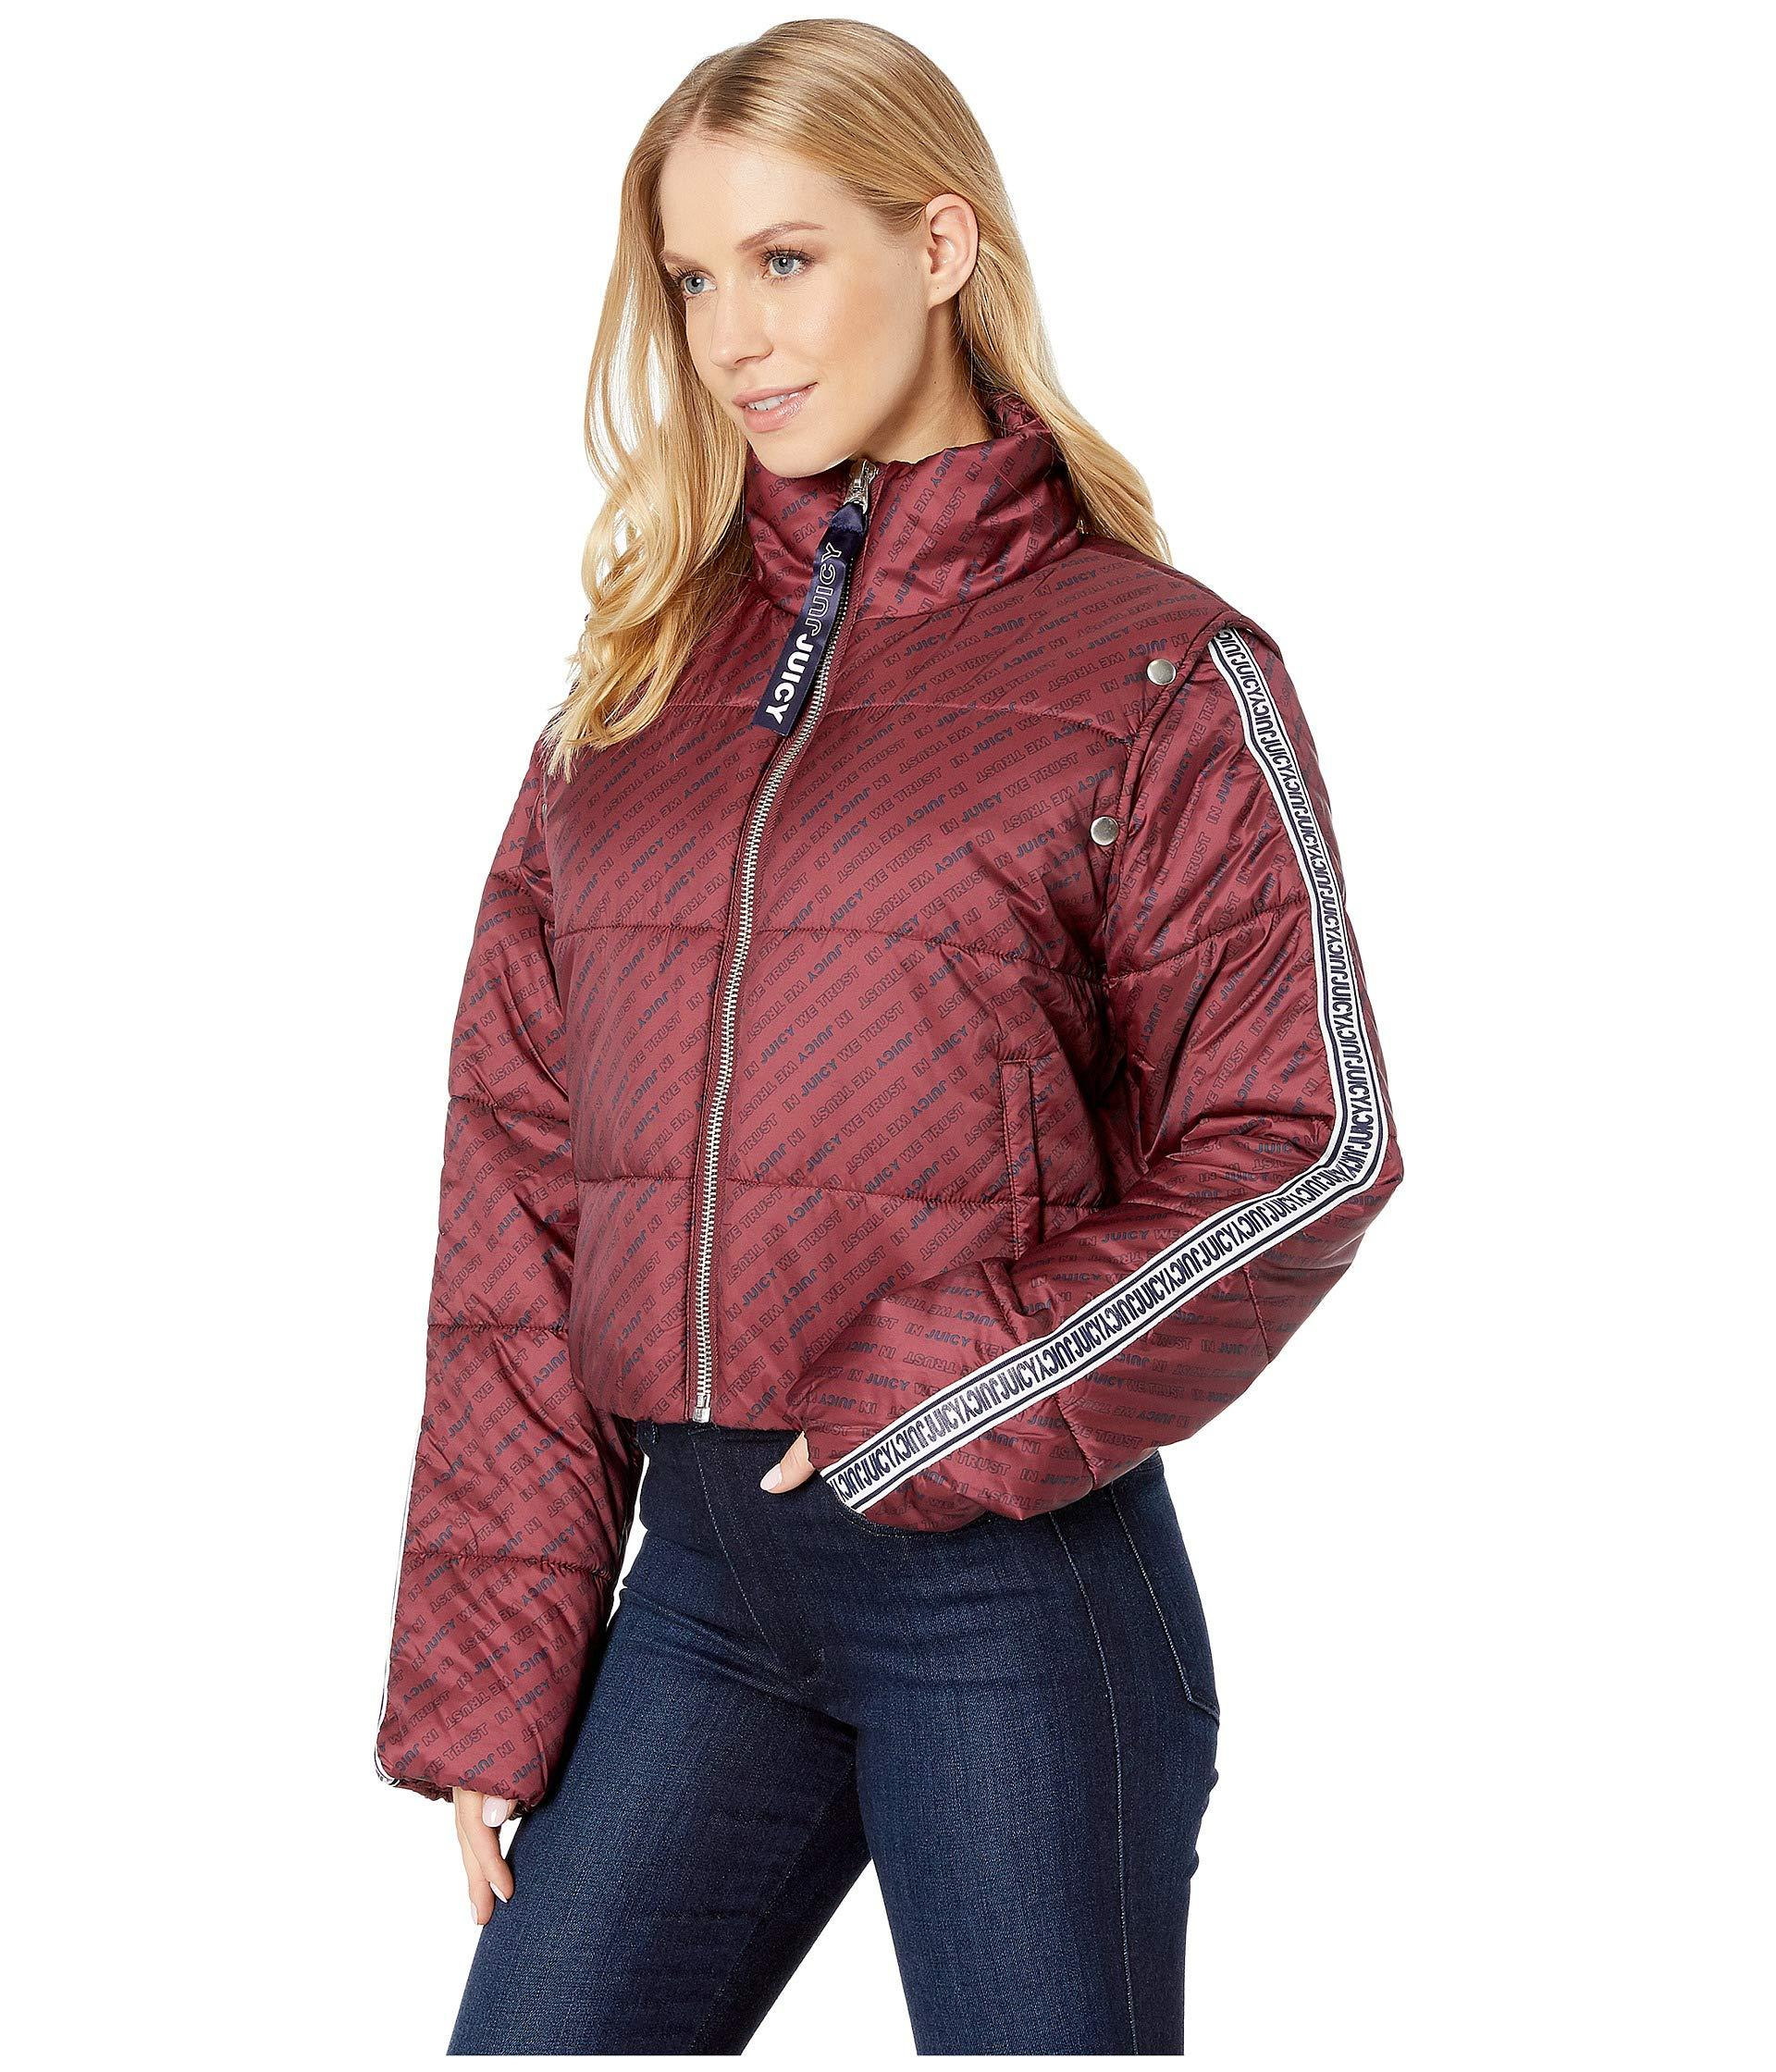 7de6a351b9 Lyst - Juicy Couture Jxjc Repeat Snap Off Sleeve Puffer Jacket in Red